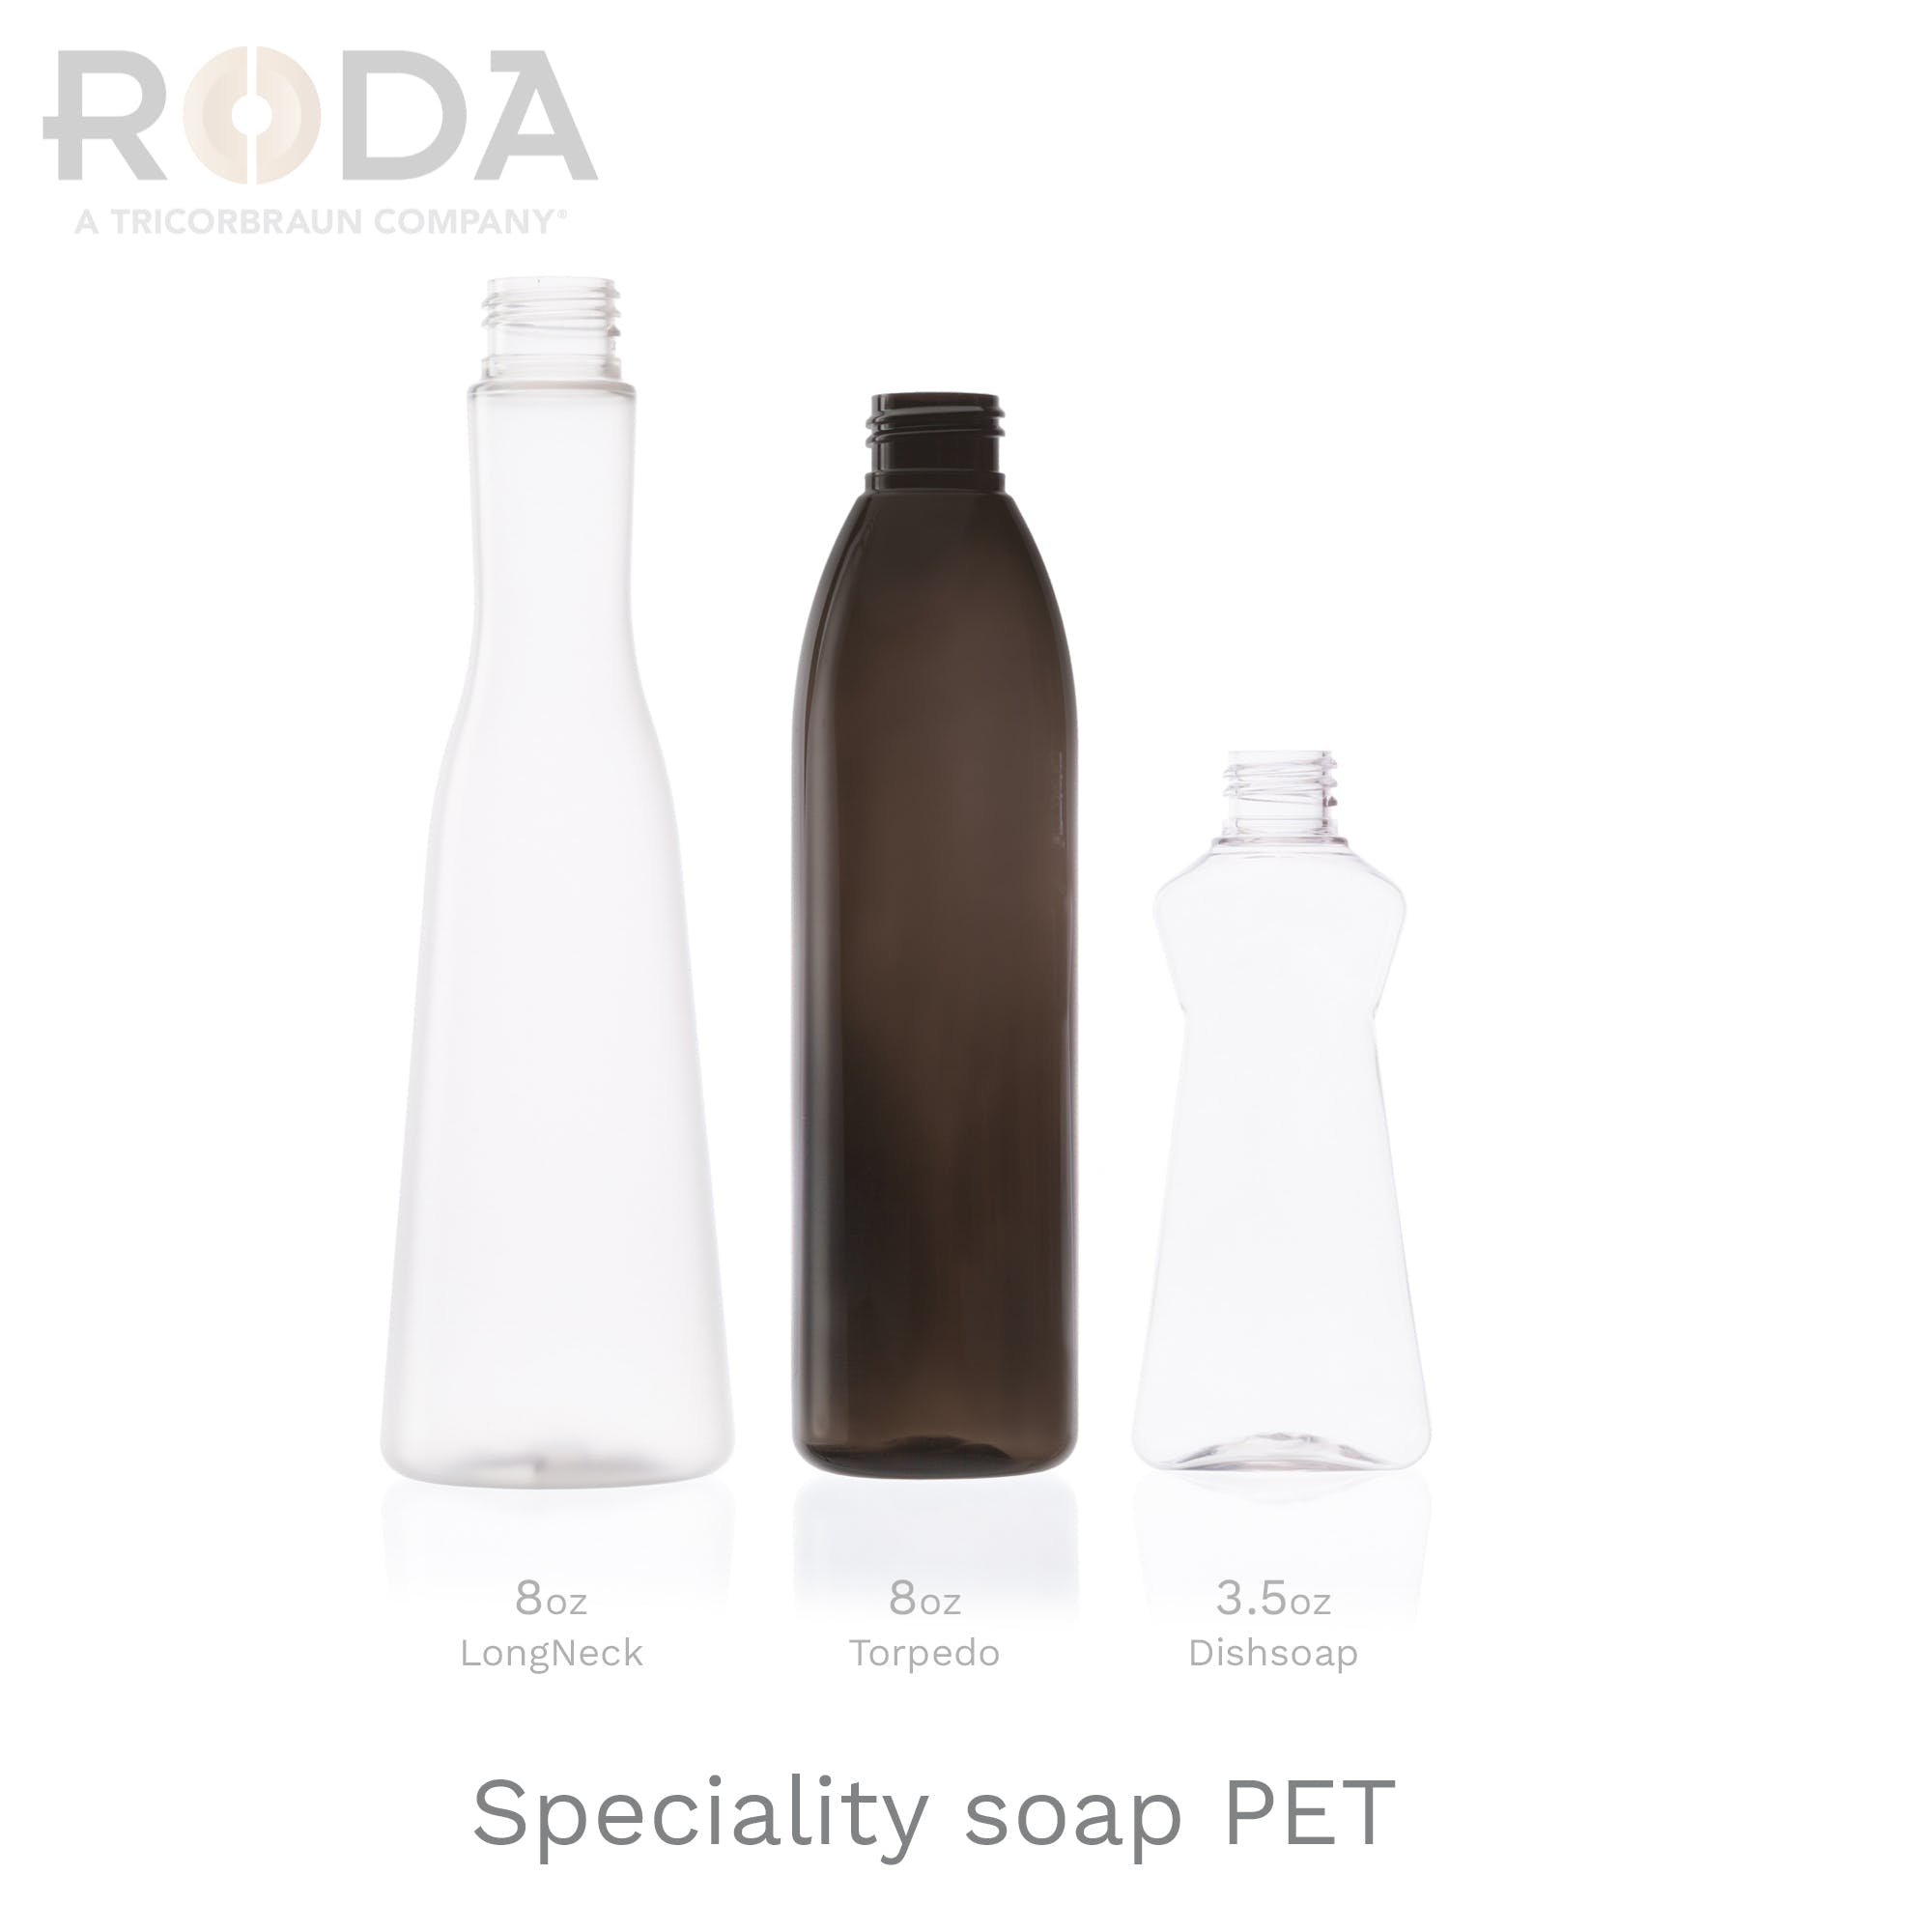 Speciality soap PET